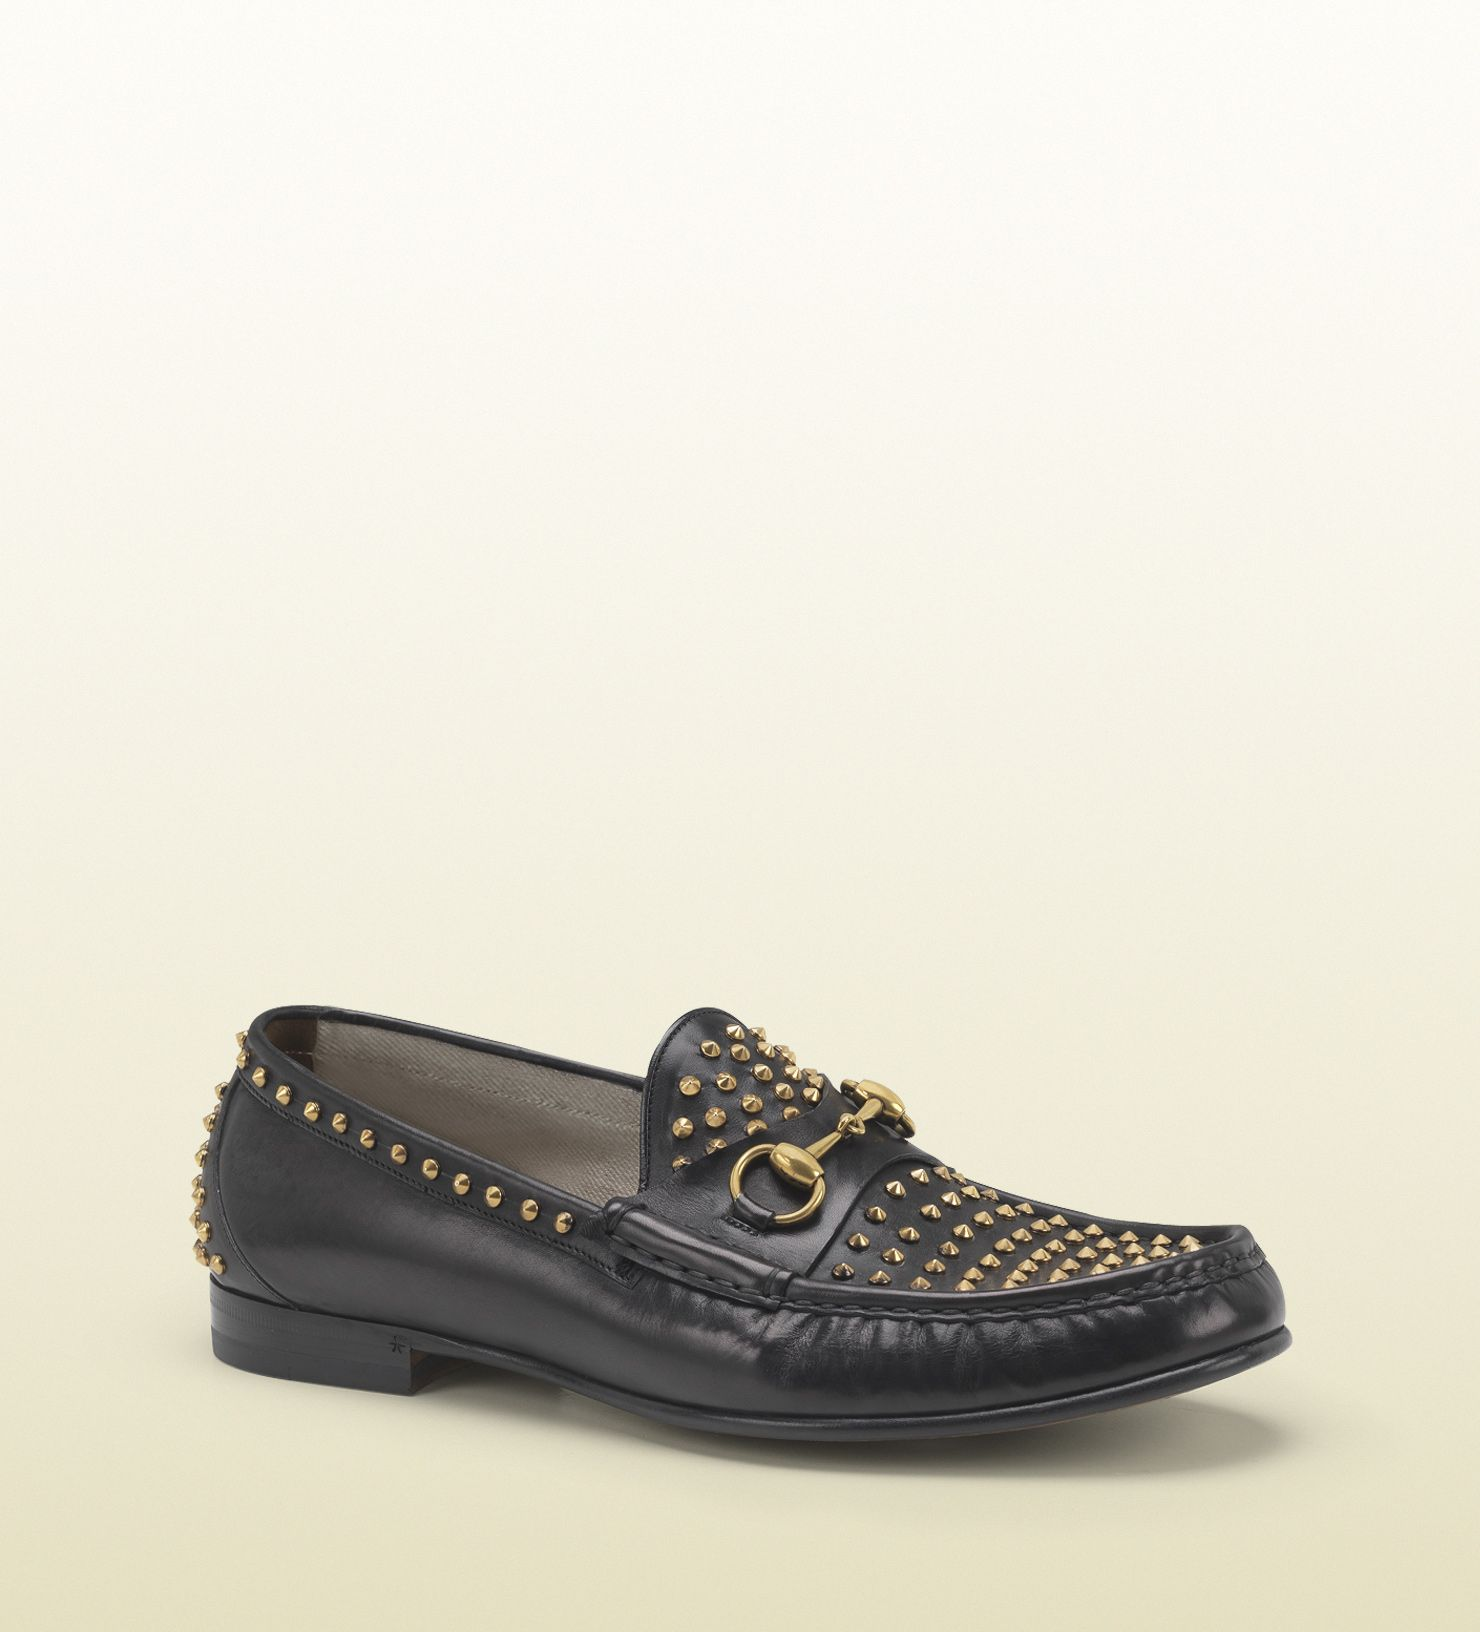 Gucci horsebit loafer 60 th. Black leather loafer with gold studs